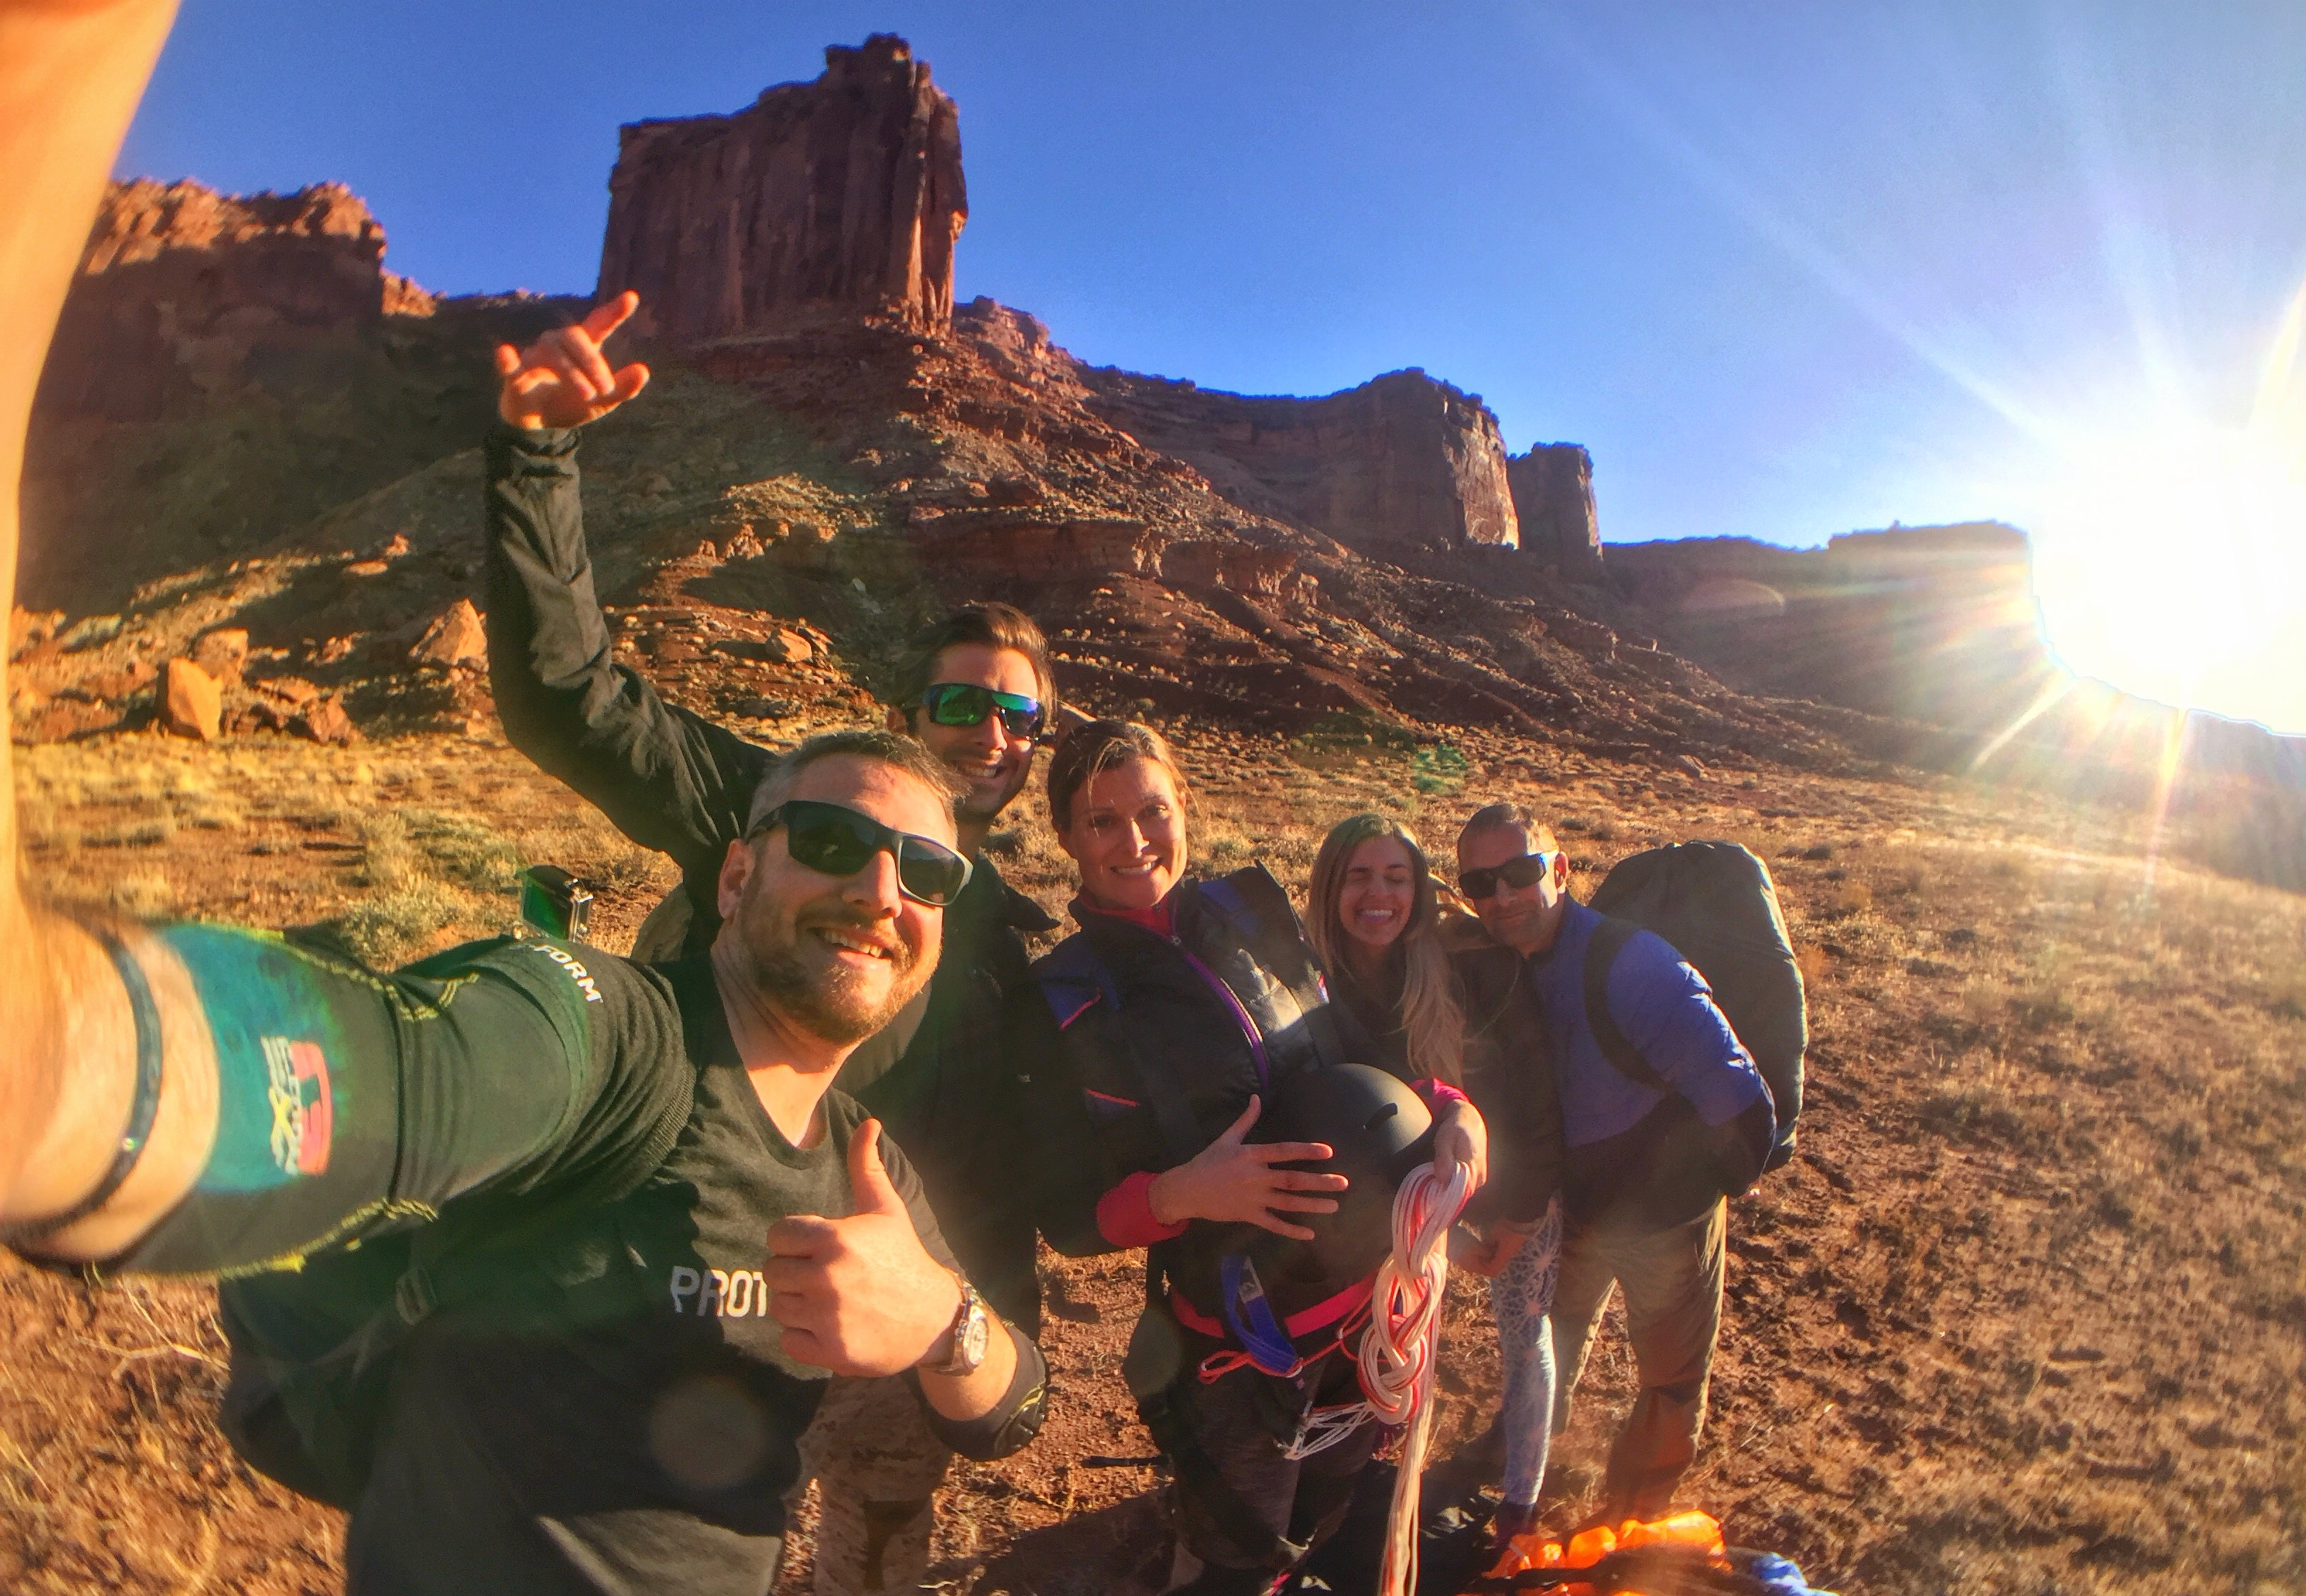 Jamie Flynn and his friends right after they jump 450ft in Moab, Utah.